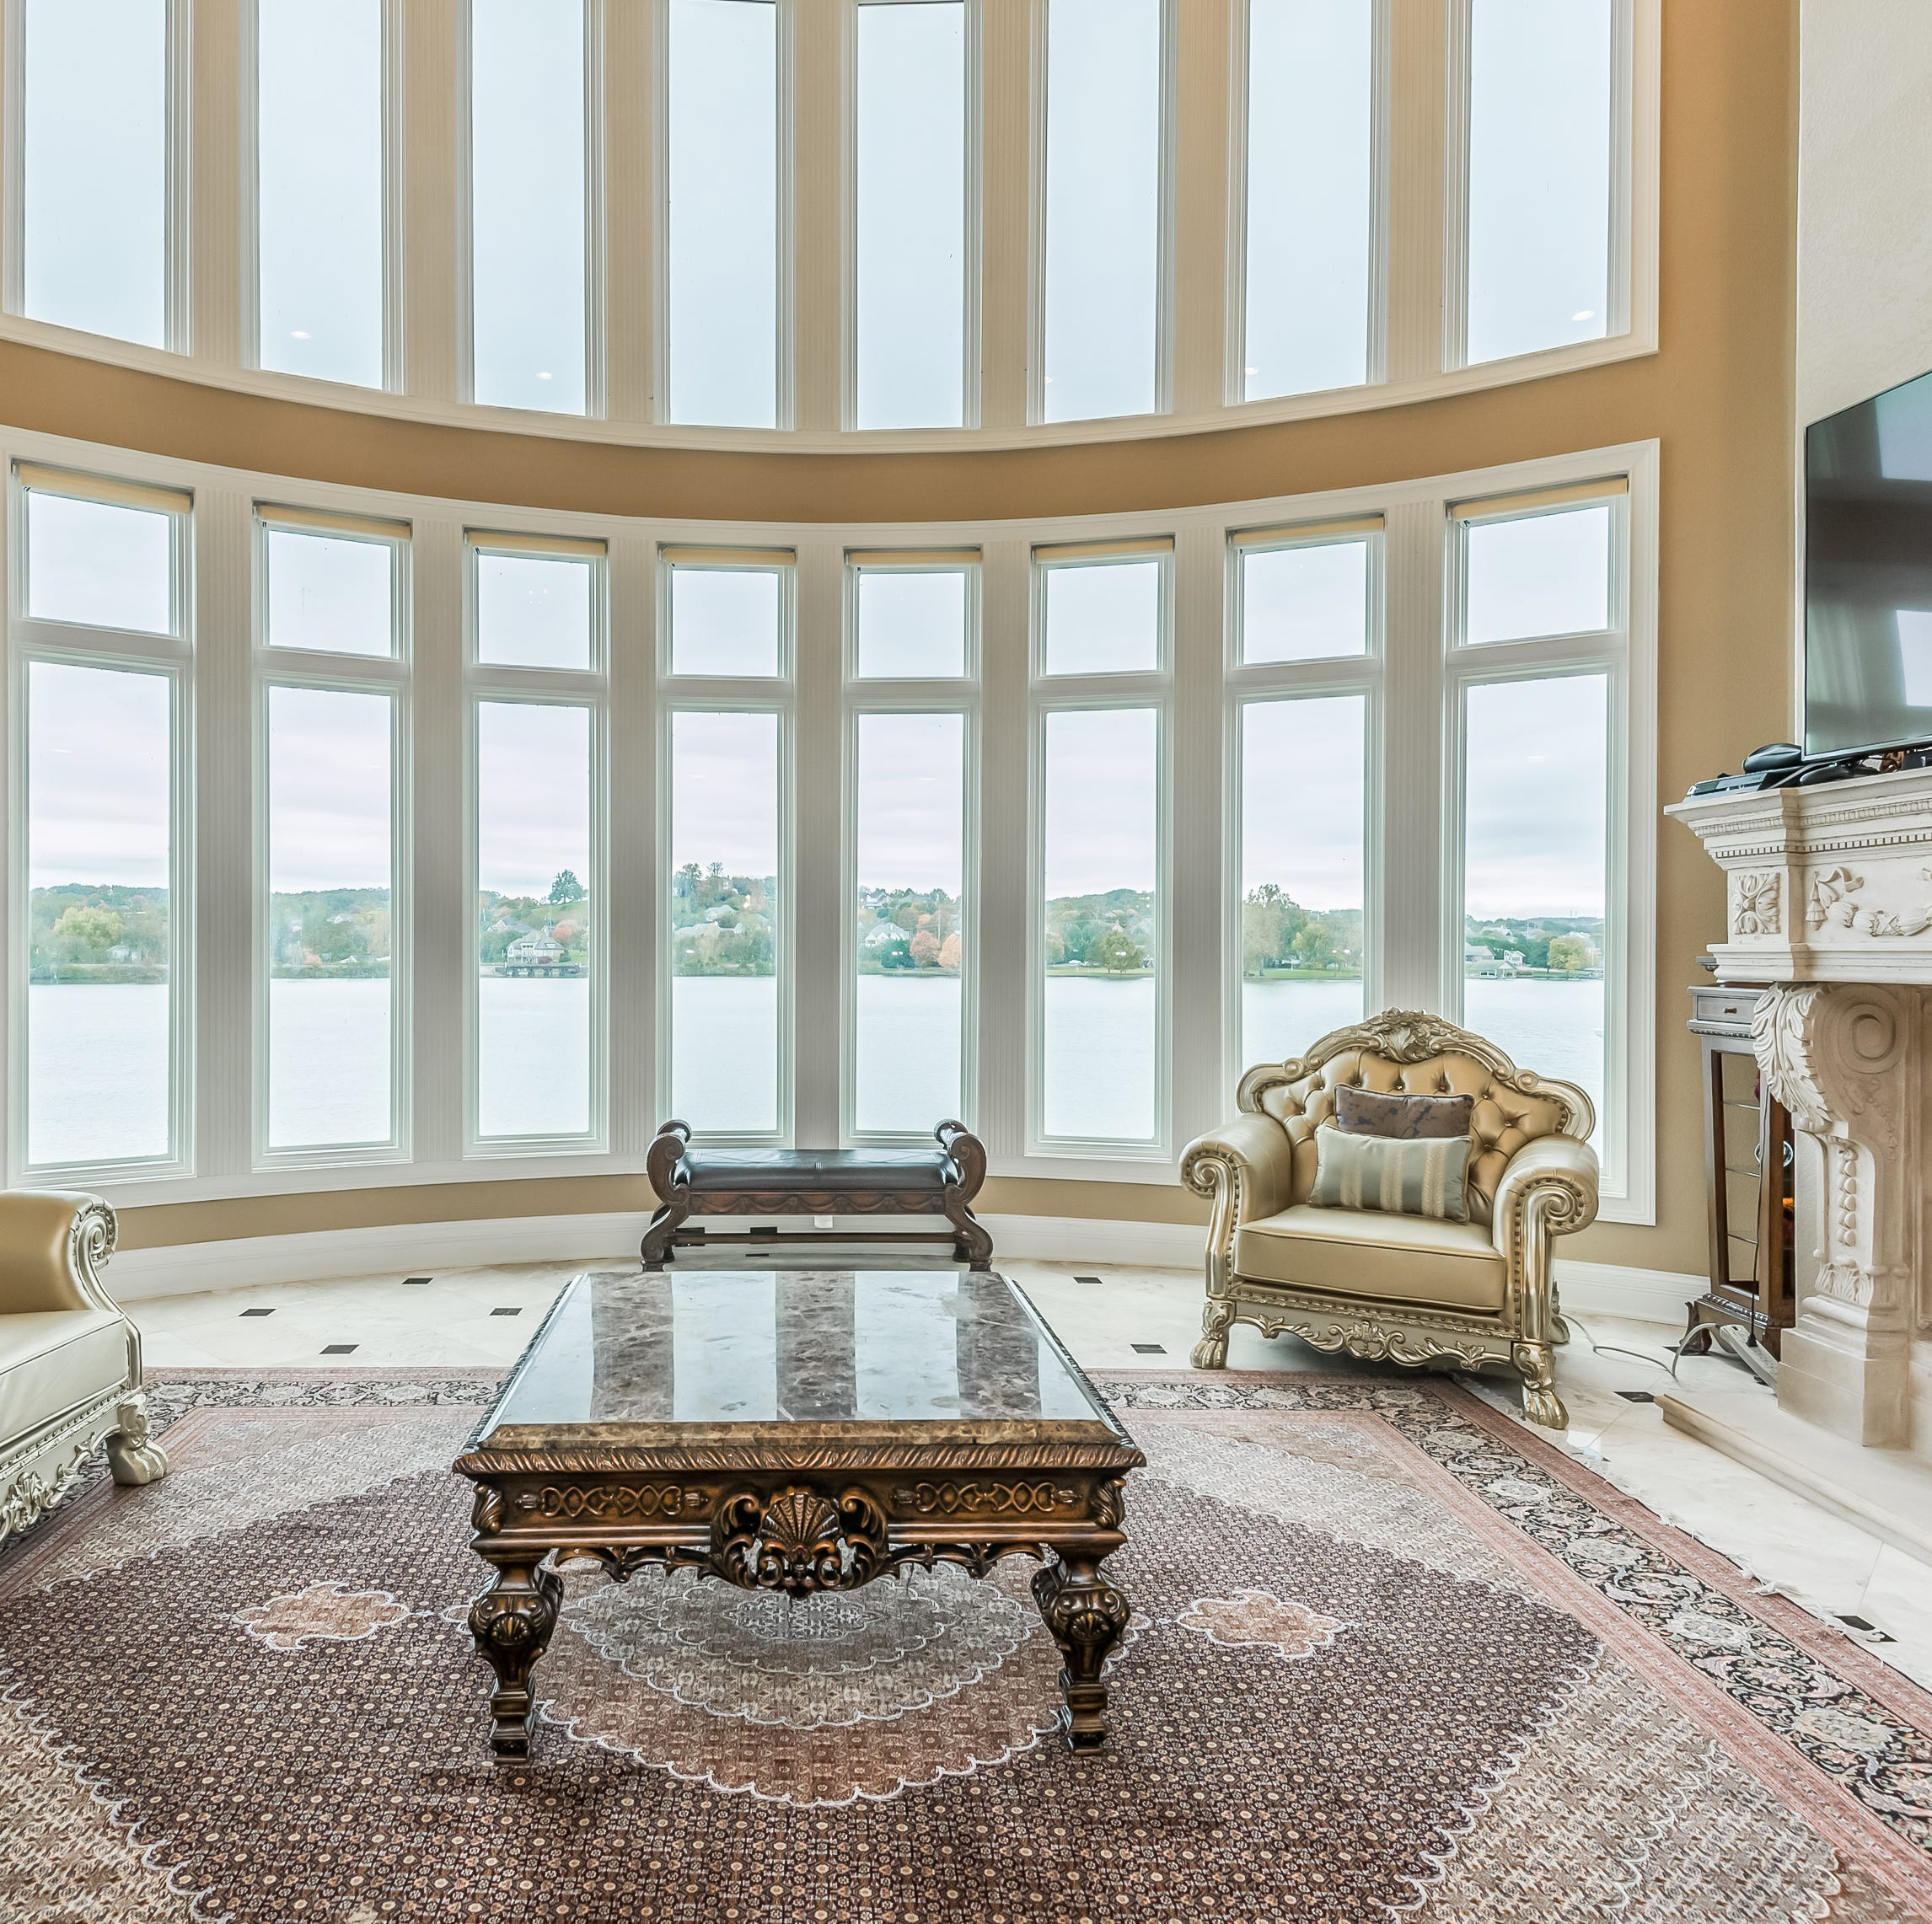 Custom-built $2M lakefront mansion for sale in Jefferson Park